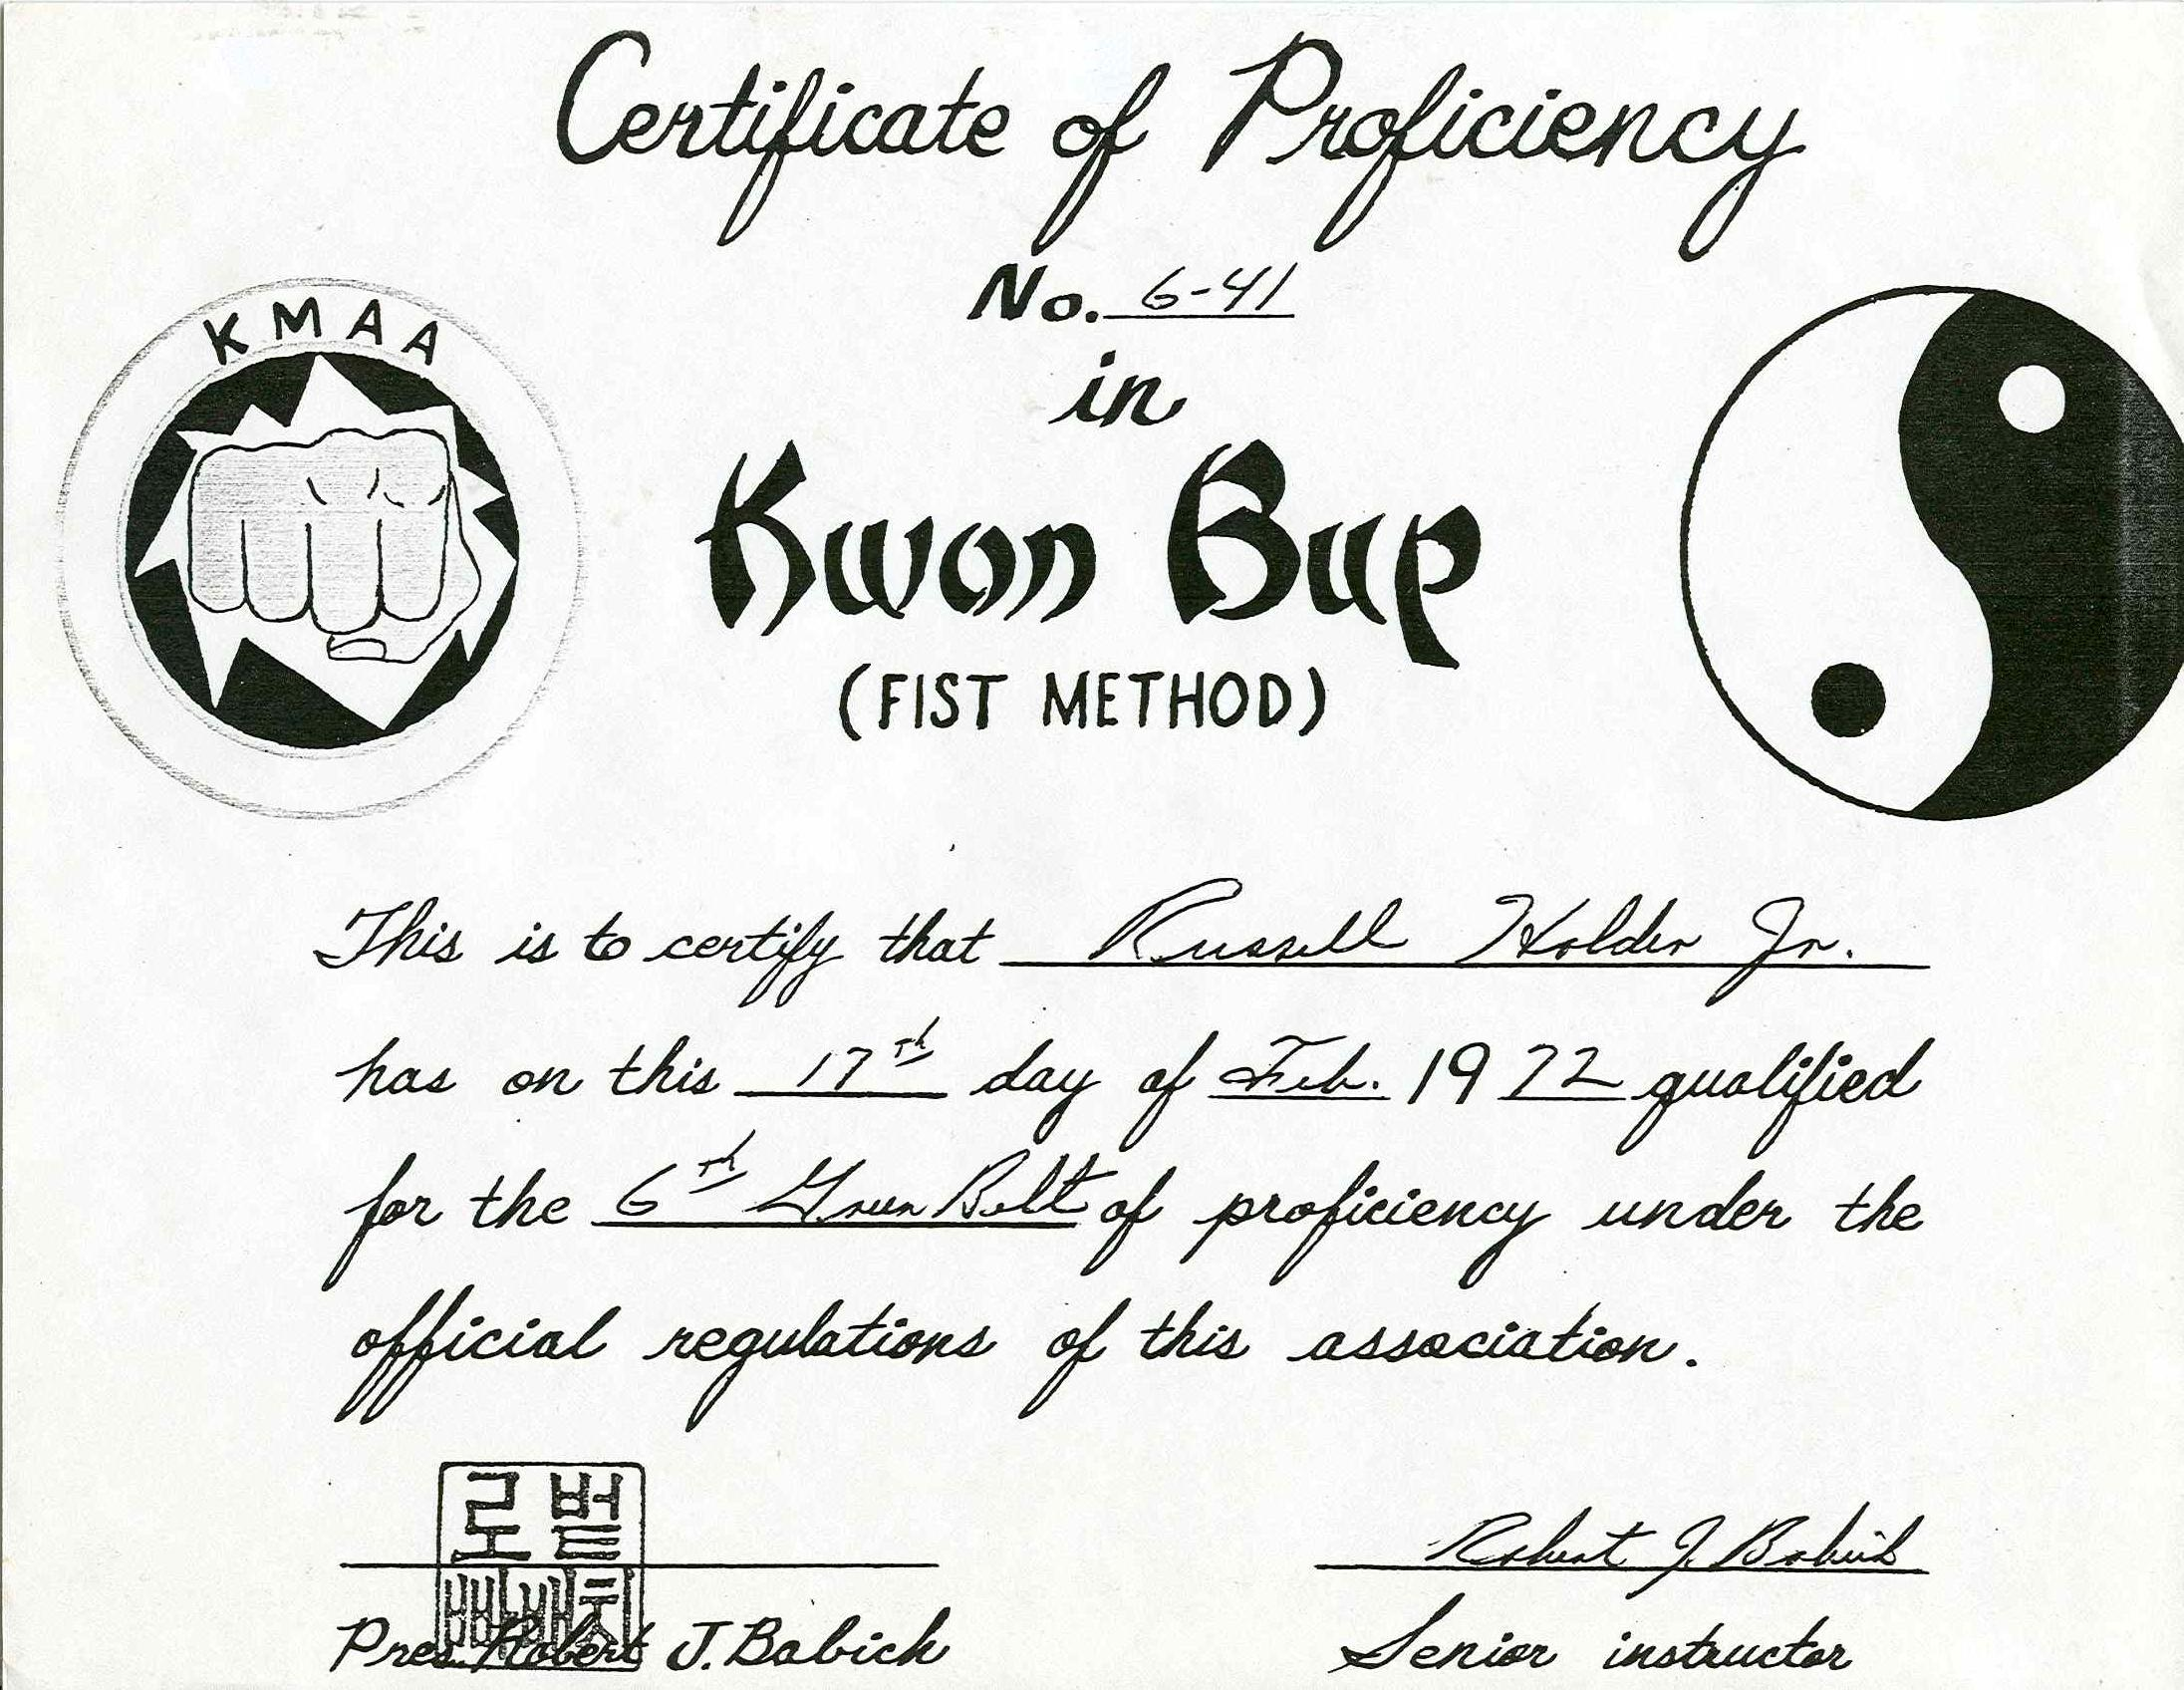 Kwon Bup, the Fist Method<